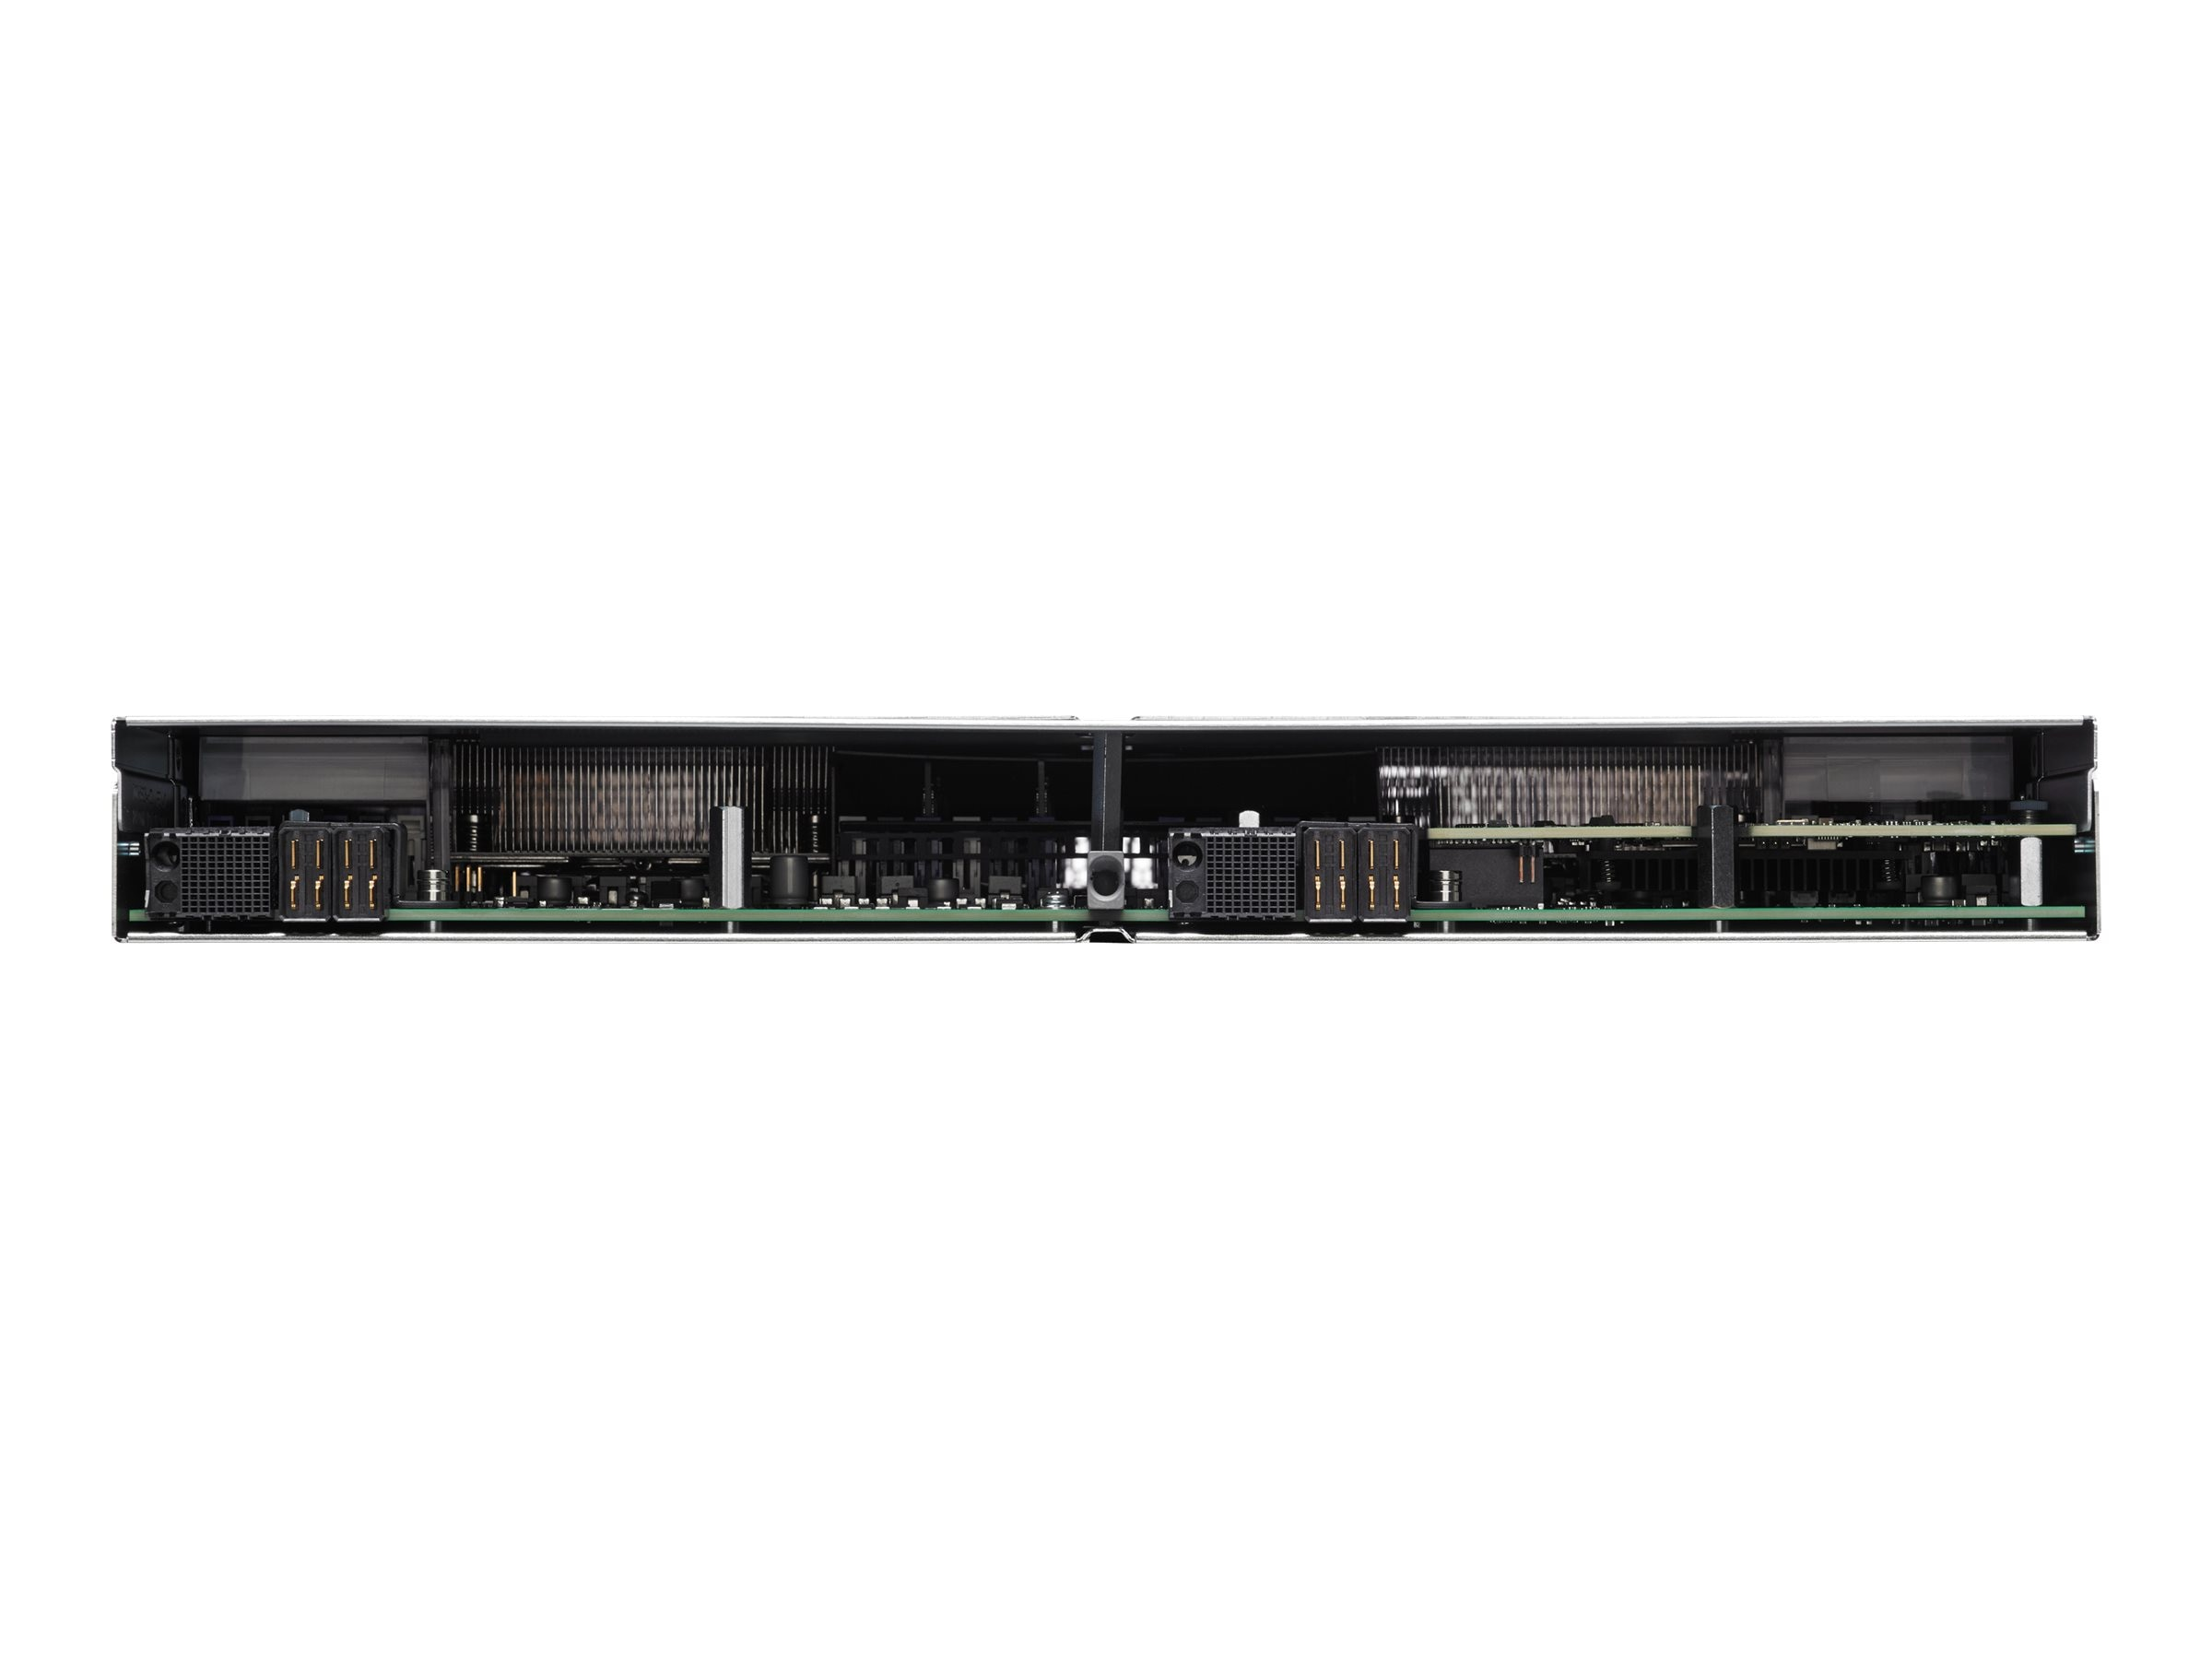 Cisco UCSB-B420-M4-U Image 5